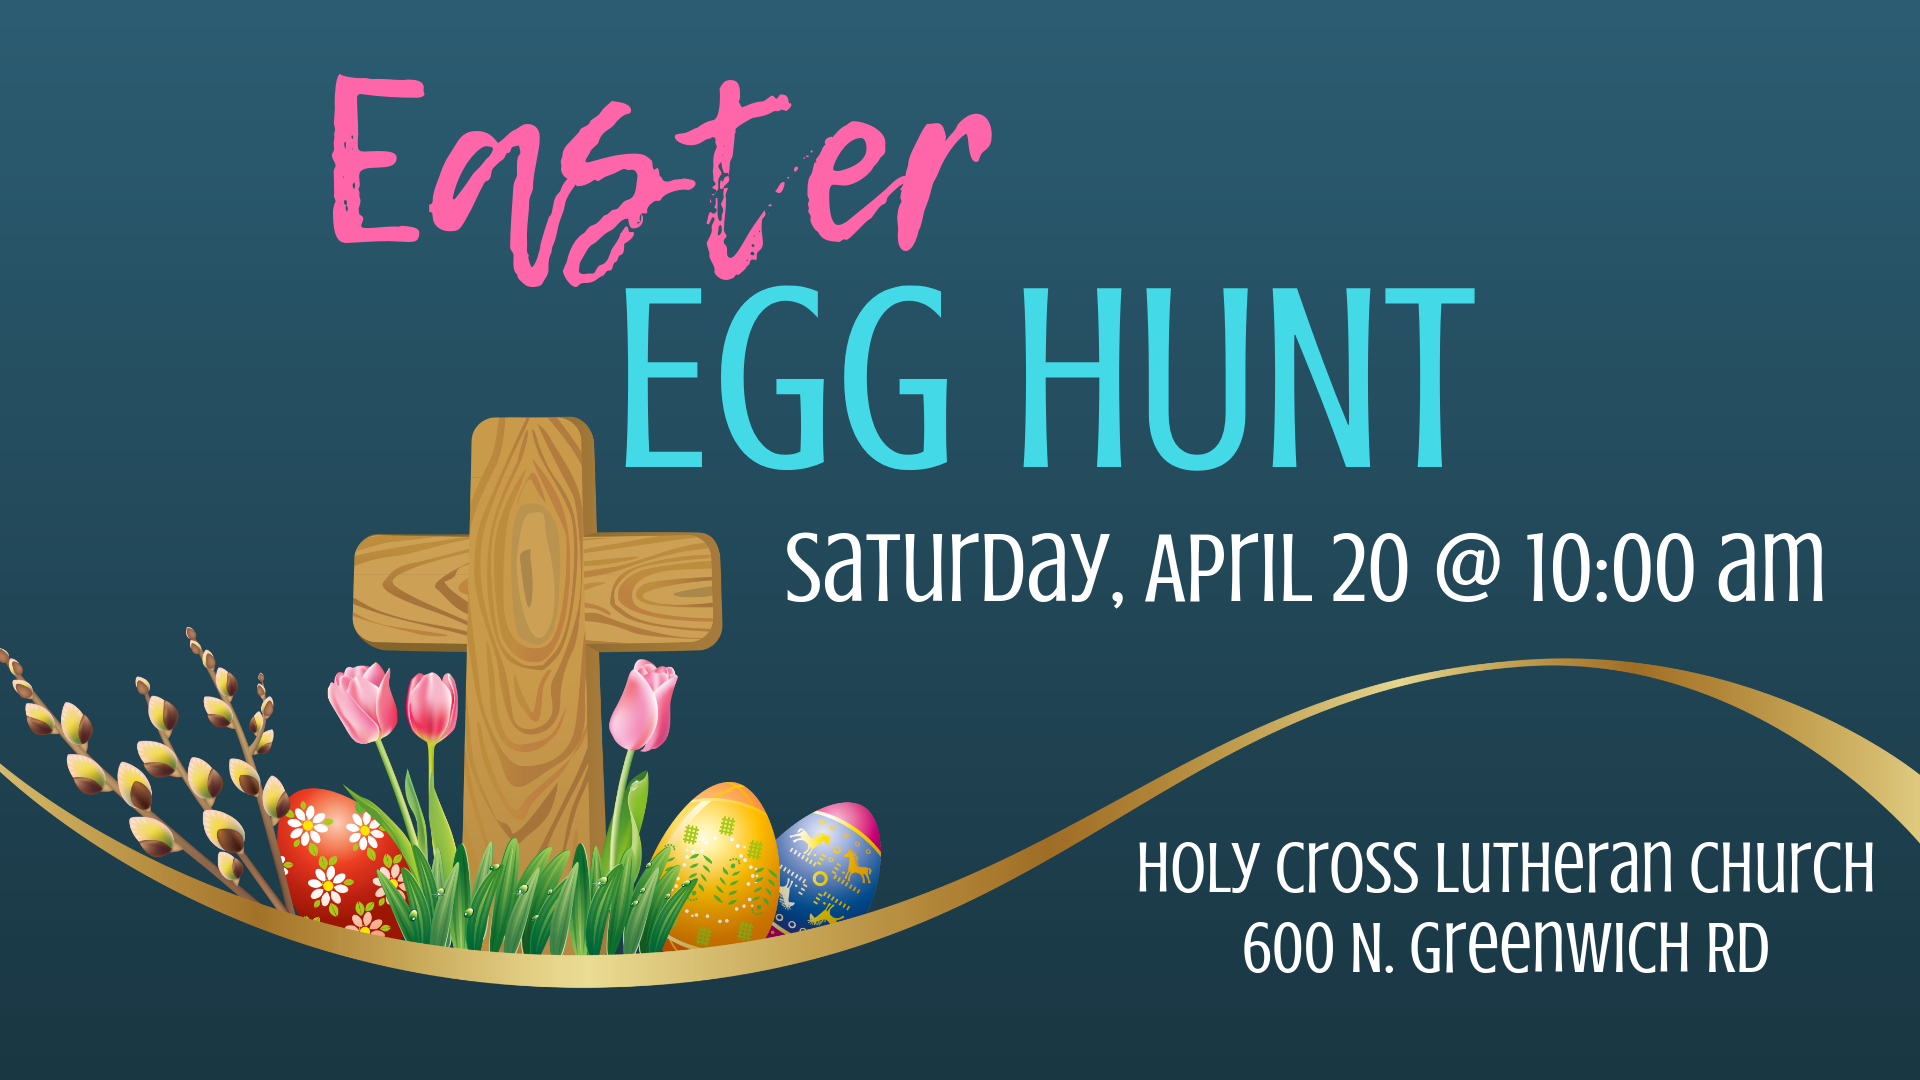 Easter Egg Hunt @ Holy Cross Lutheran Church